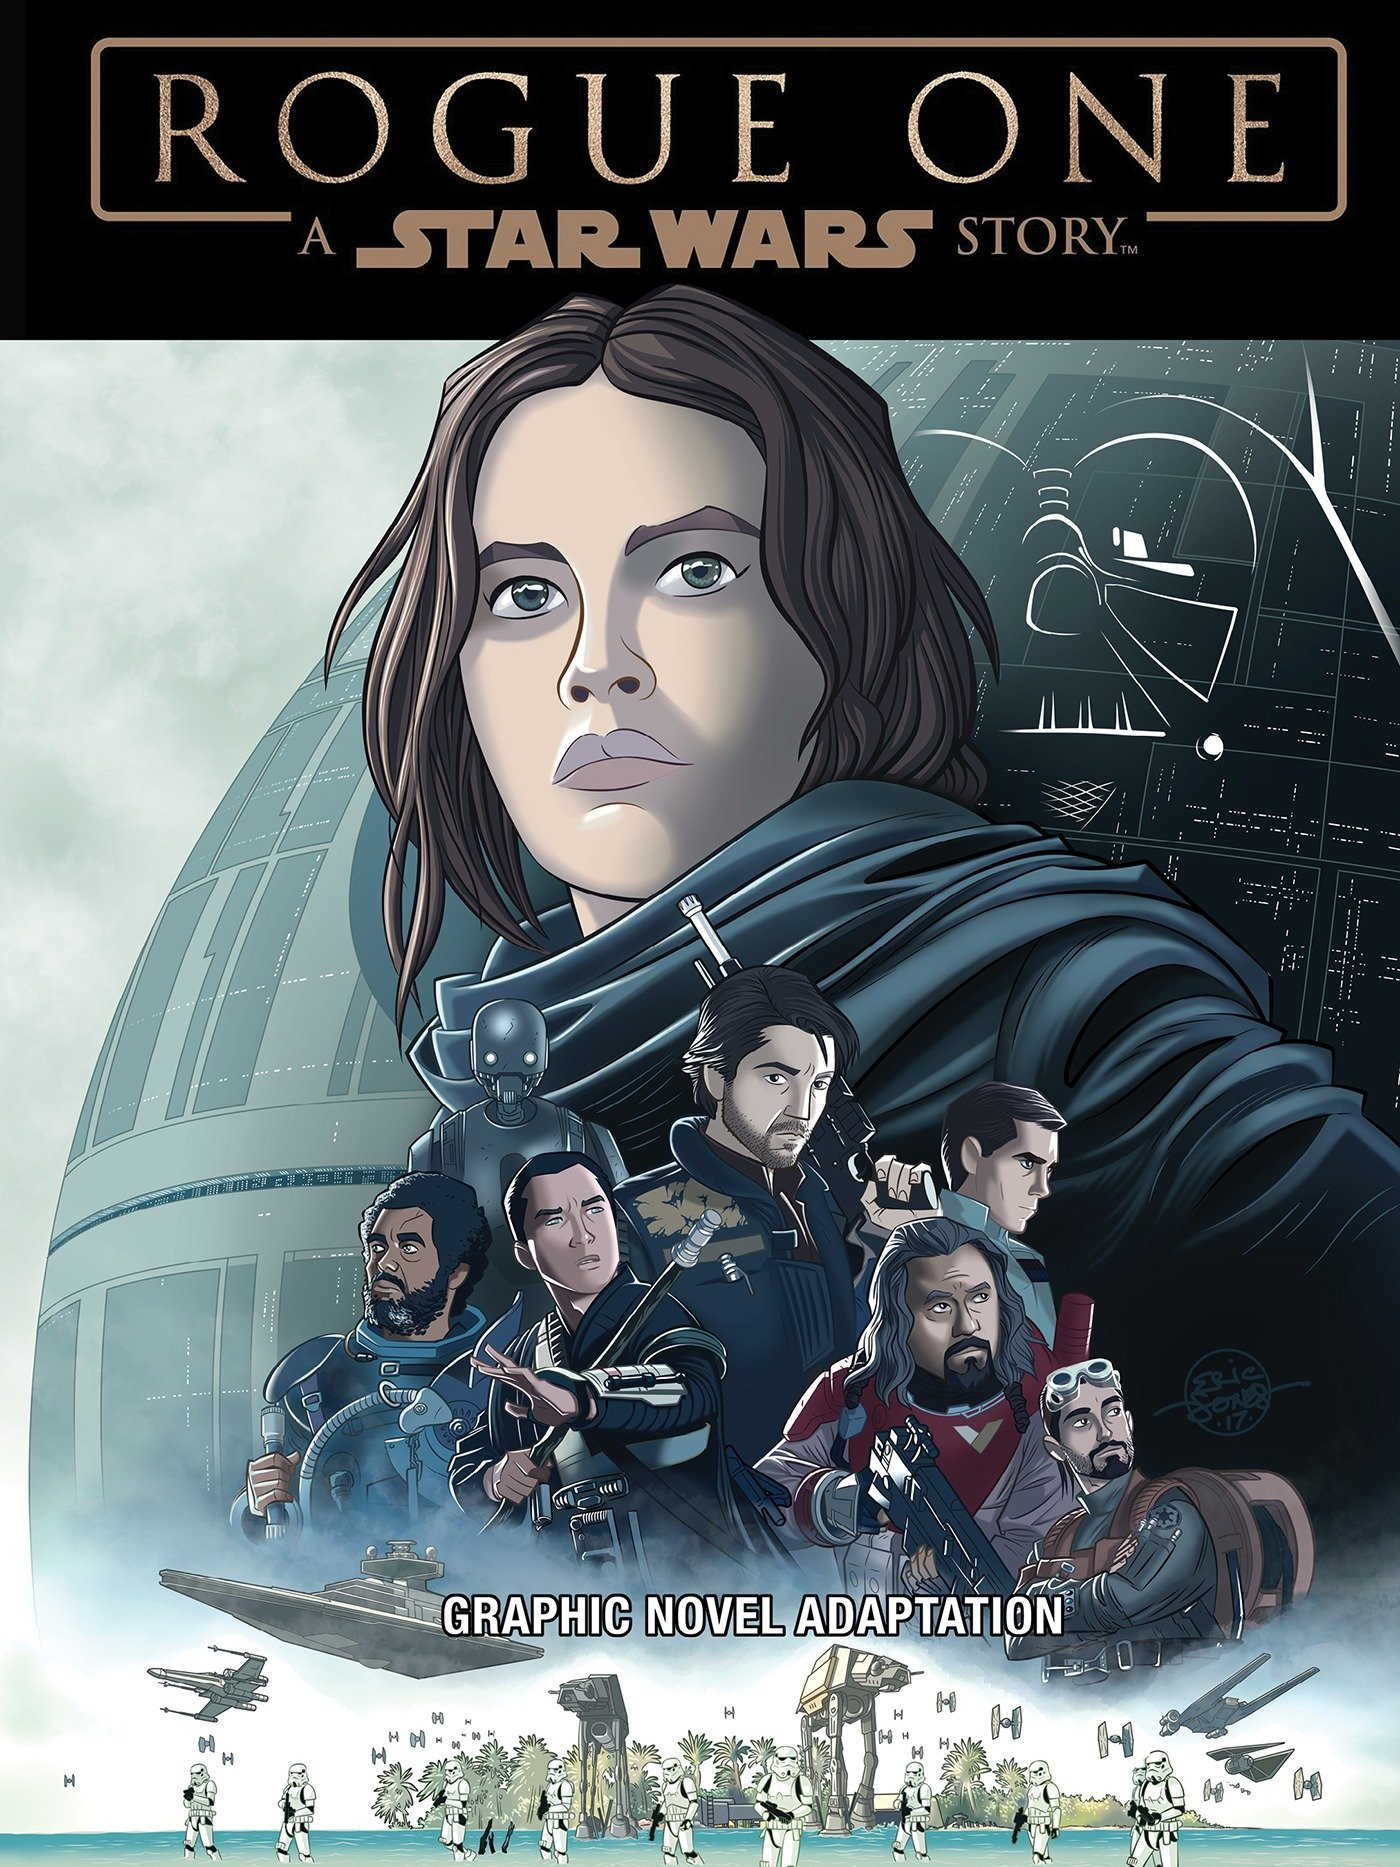 Rogue One: A Star Wars Story Graphic Novel Adaptation